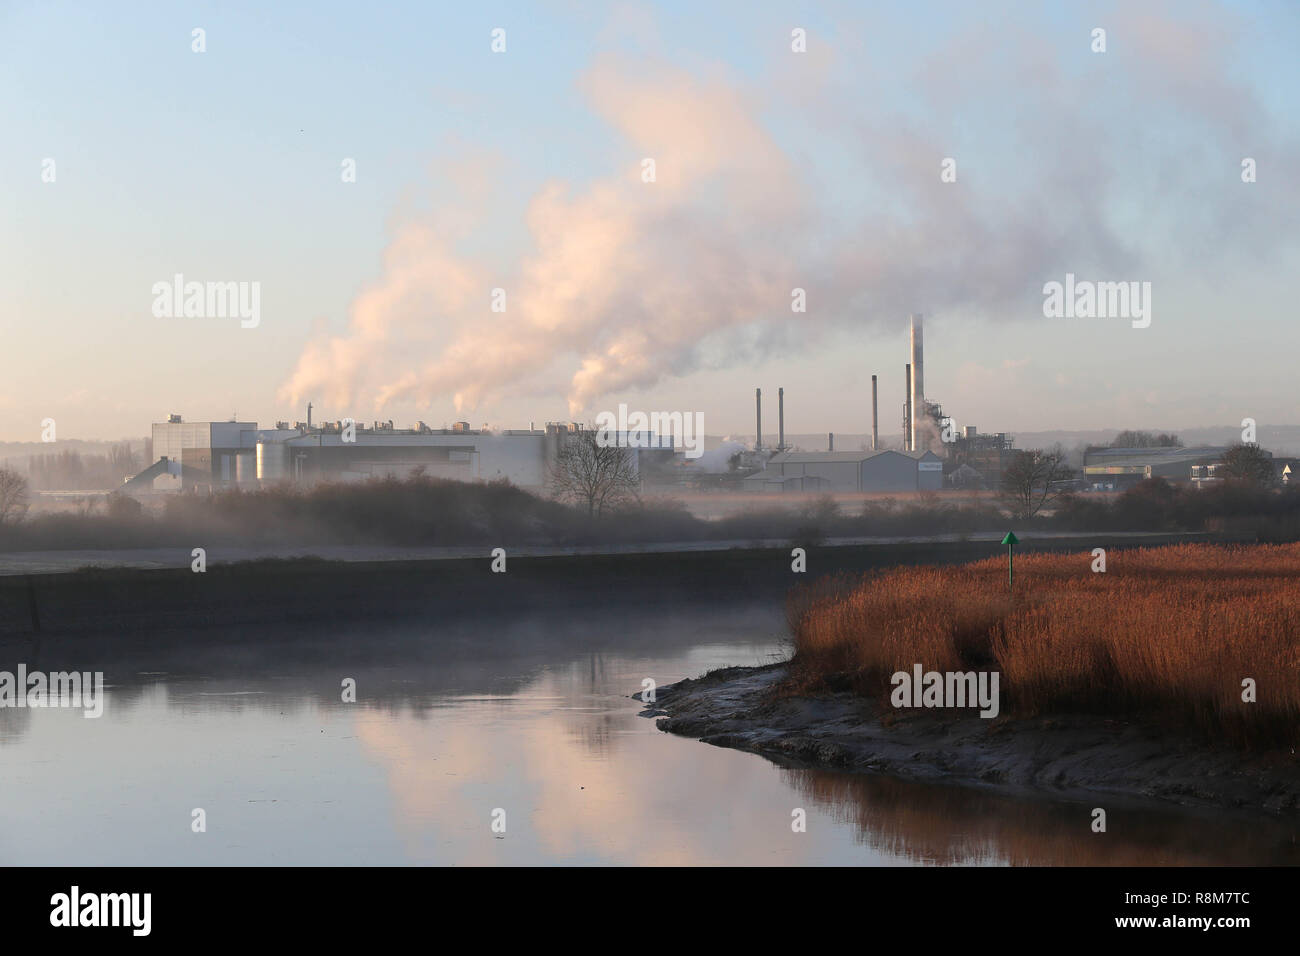 Smurfit Kappa plant, on the banks of the River Medway at Aylesford Kent UK. Smurfit Kappa are one of Europes largest recyclers of paper and card. - Stock Image